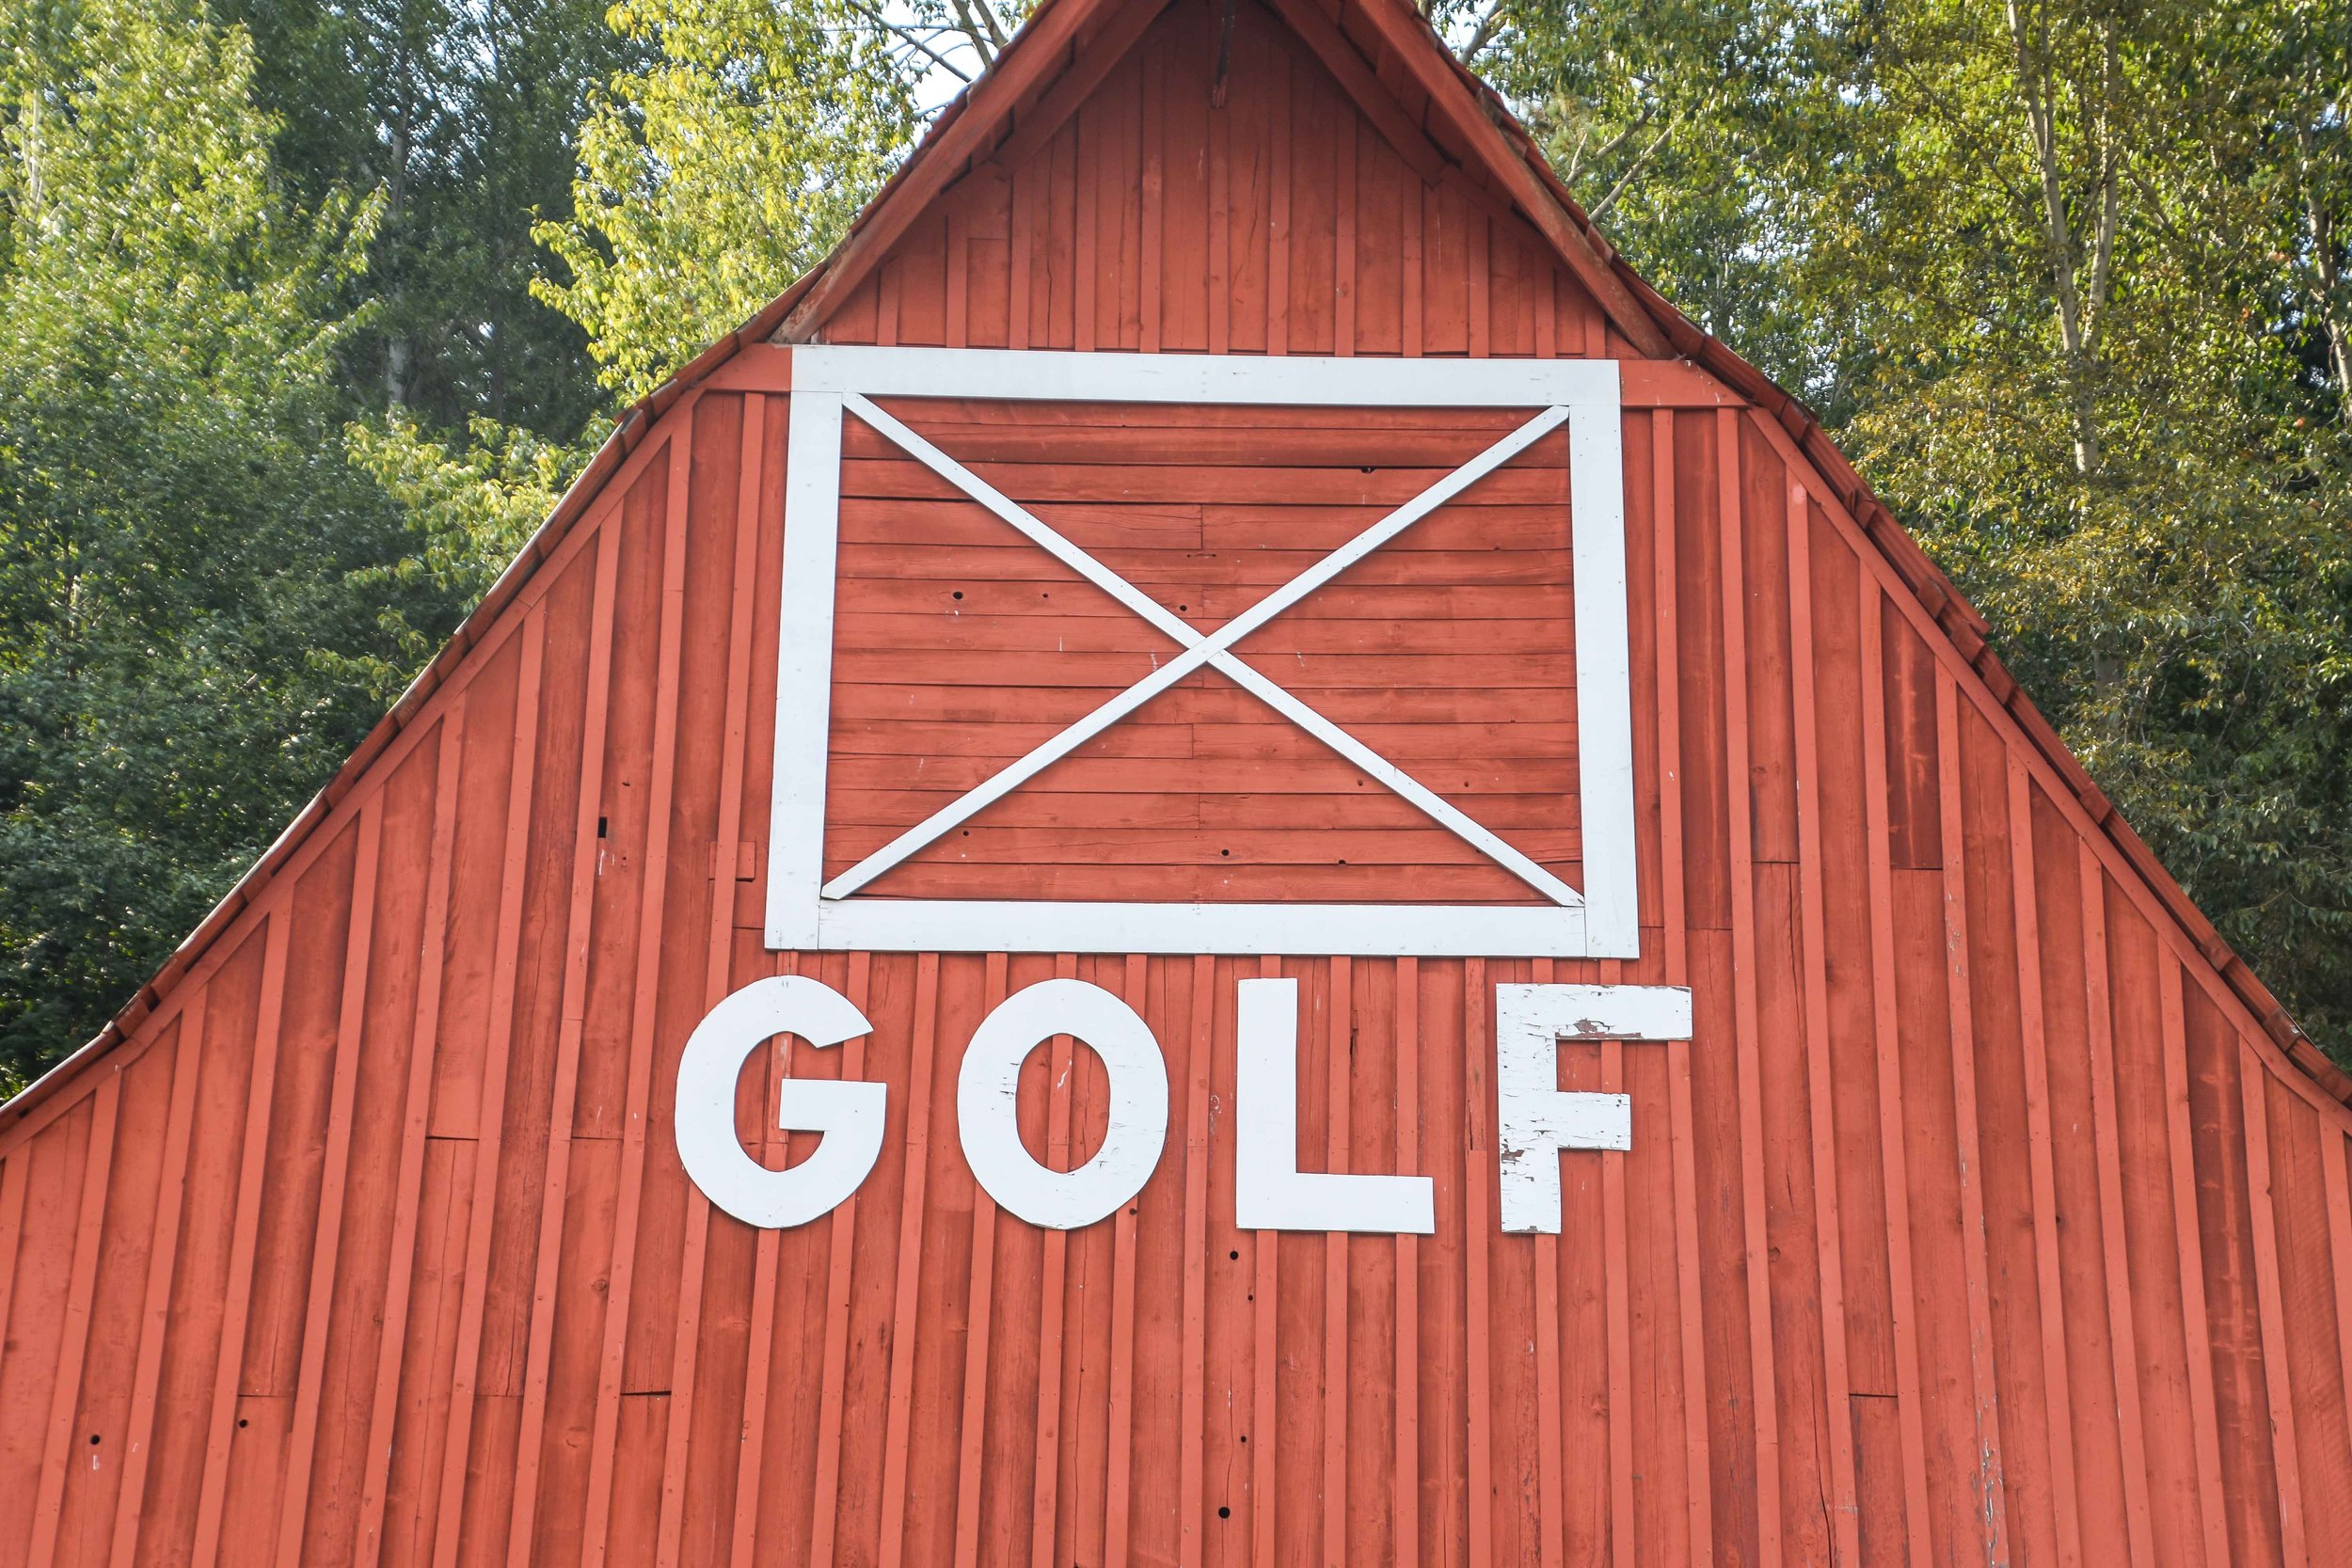 The current #1 golf barn is at Sun Country Golf Course in Cle Elum, WA